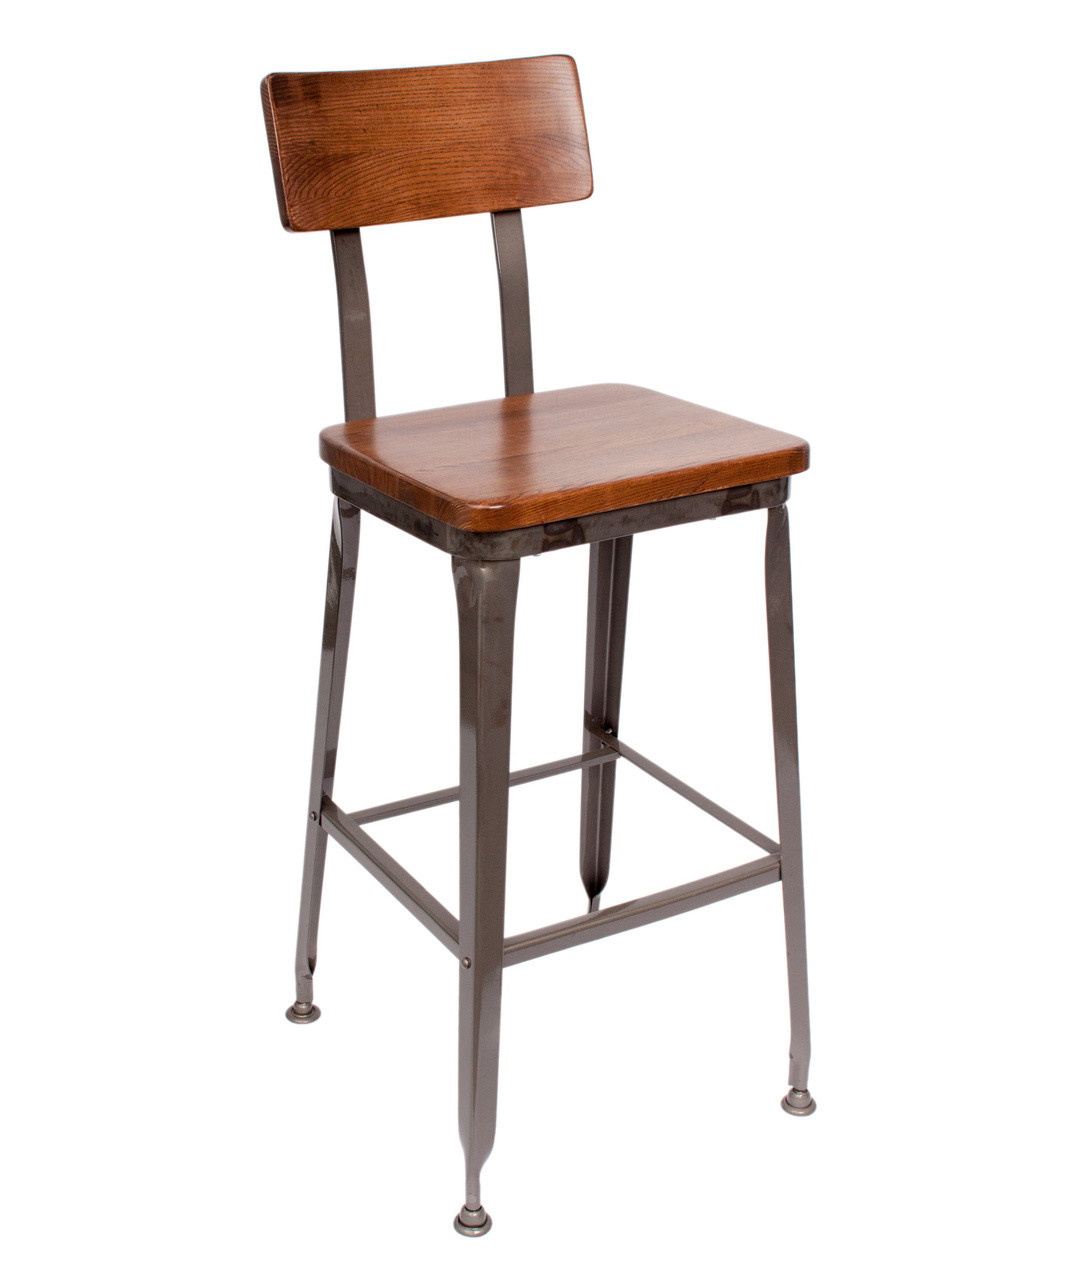 Outstanding Industrial Metal Stool Uwap Interior Chair Design Uwaporg